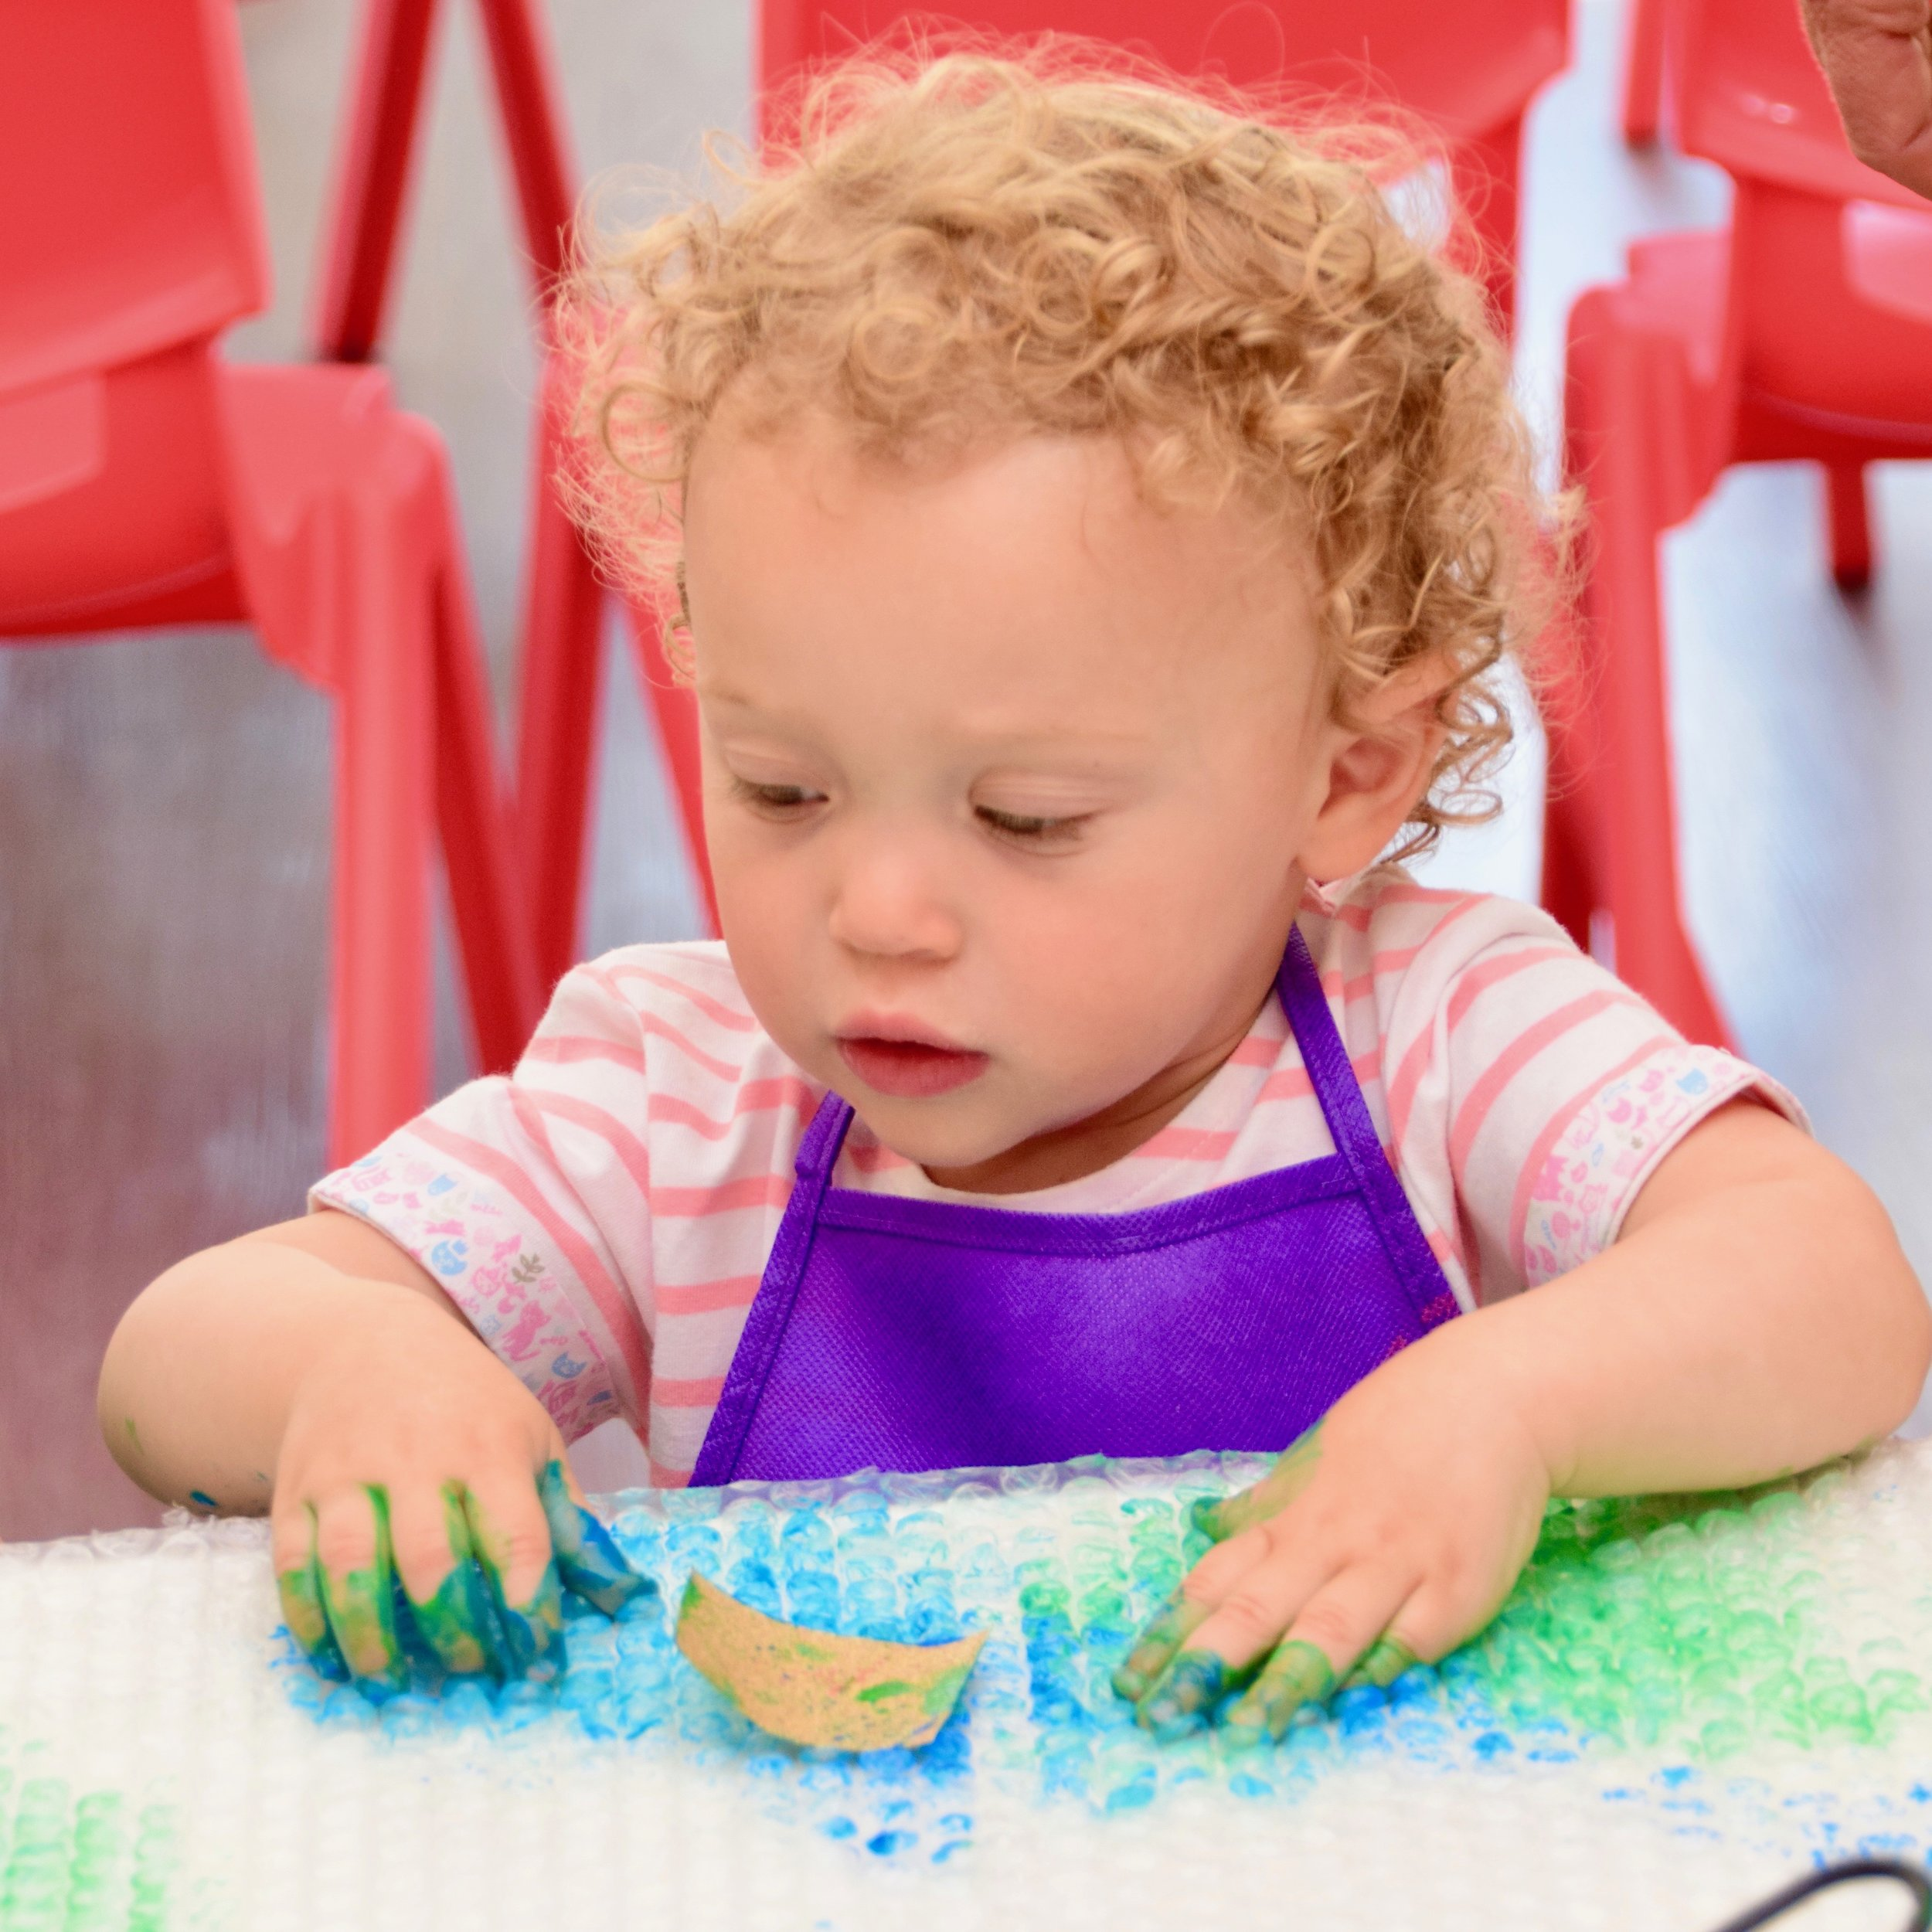 Kids Art Classes Cleveland, Toddler Art Classes